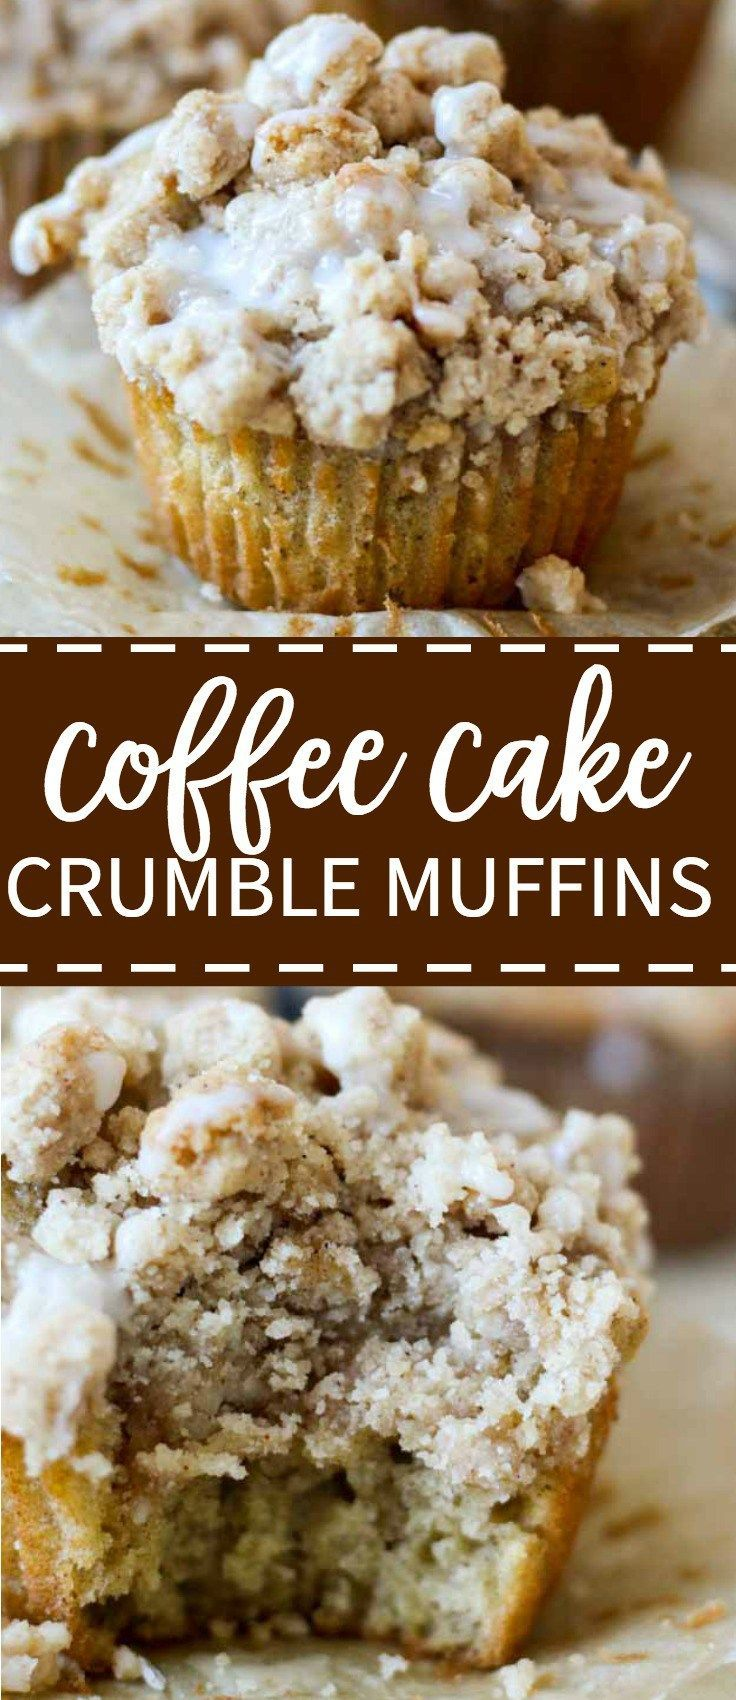 Soft and light coffee cake crumble muffins are topped with a crumbly, buttery streusel top overflowing as you pull them out of the oven. They're explosions of flavor in your mouth.